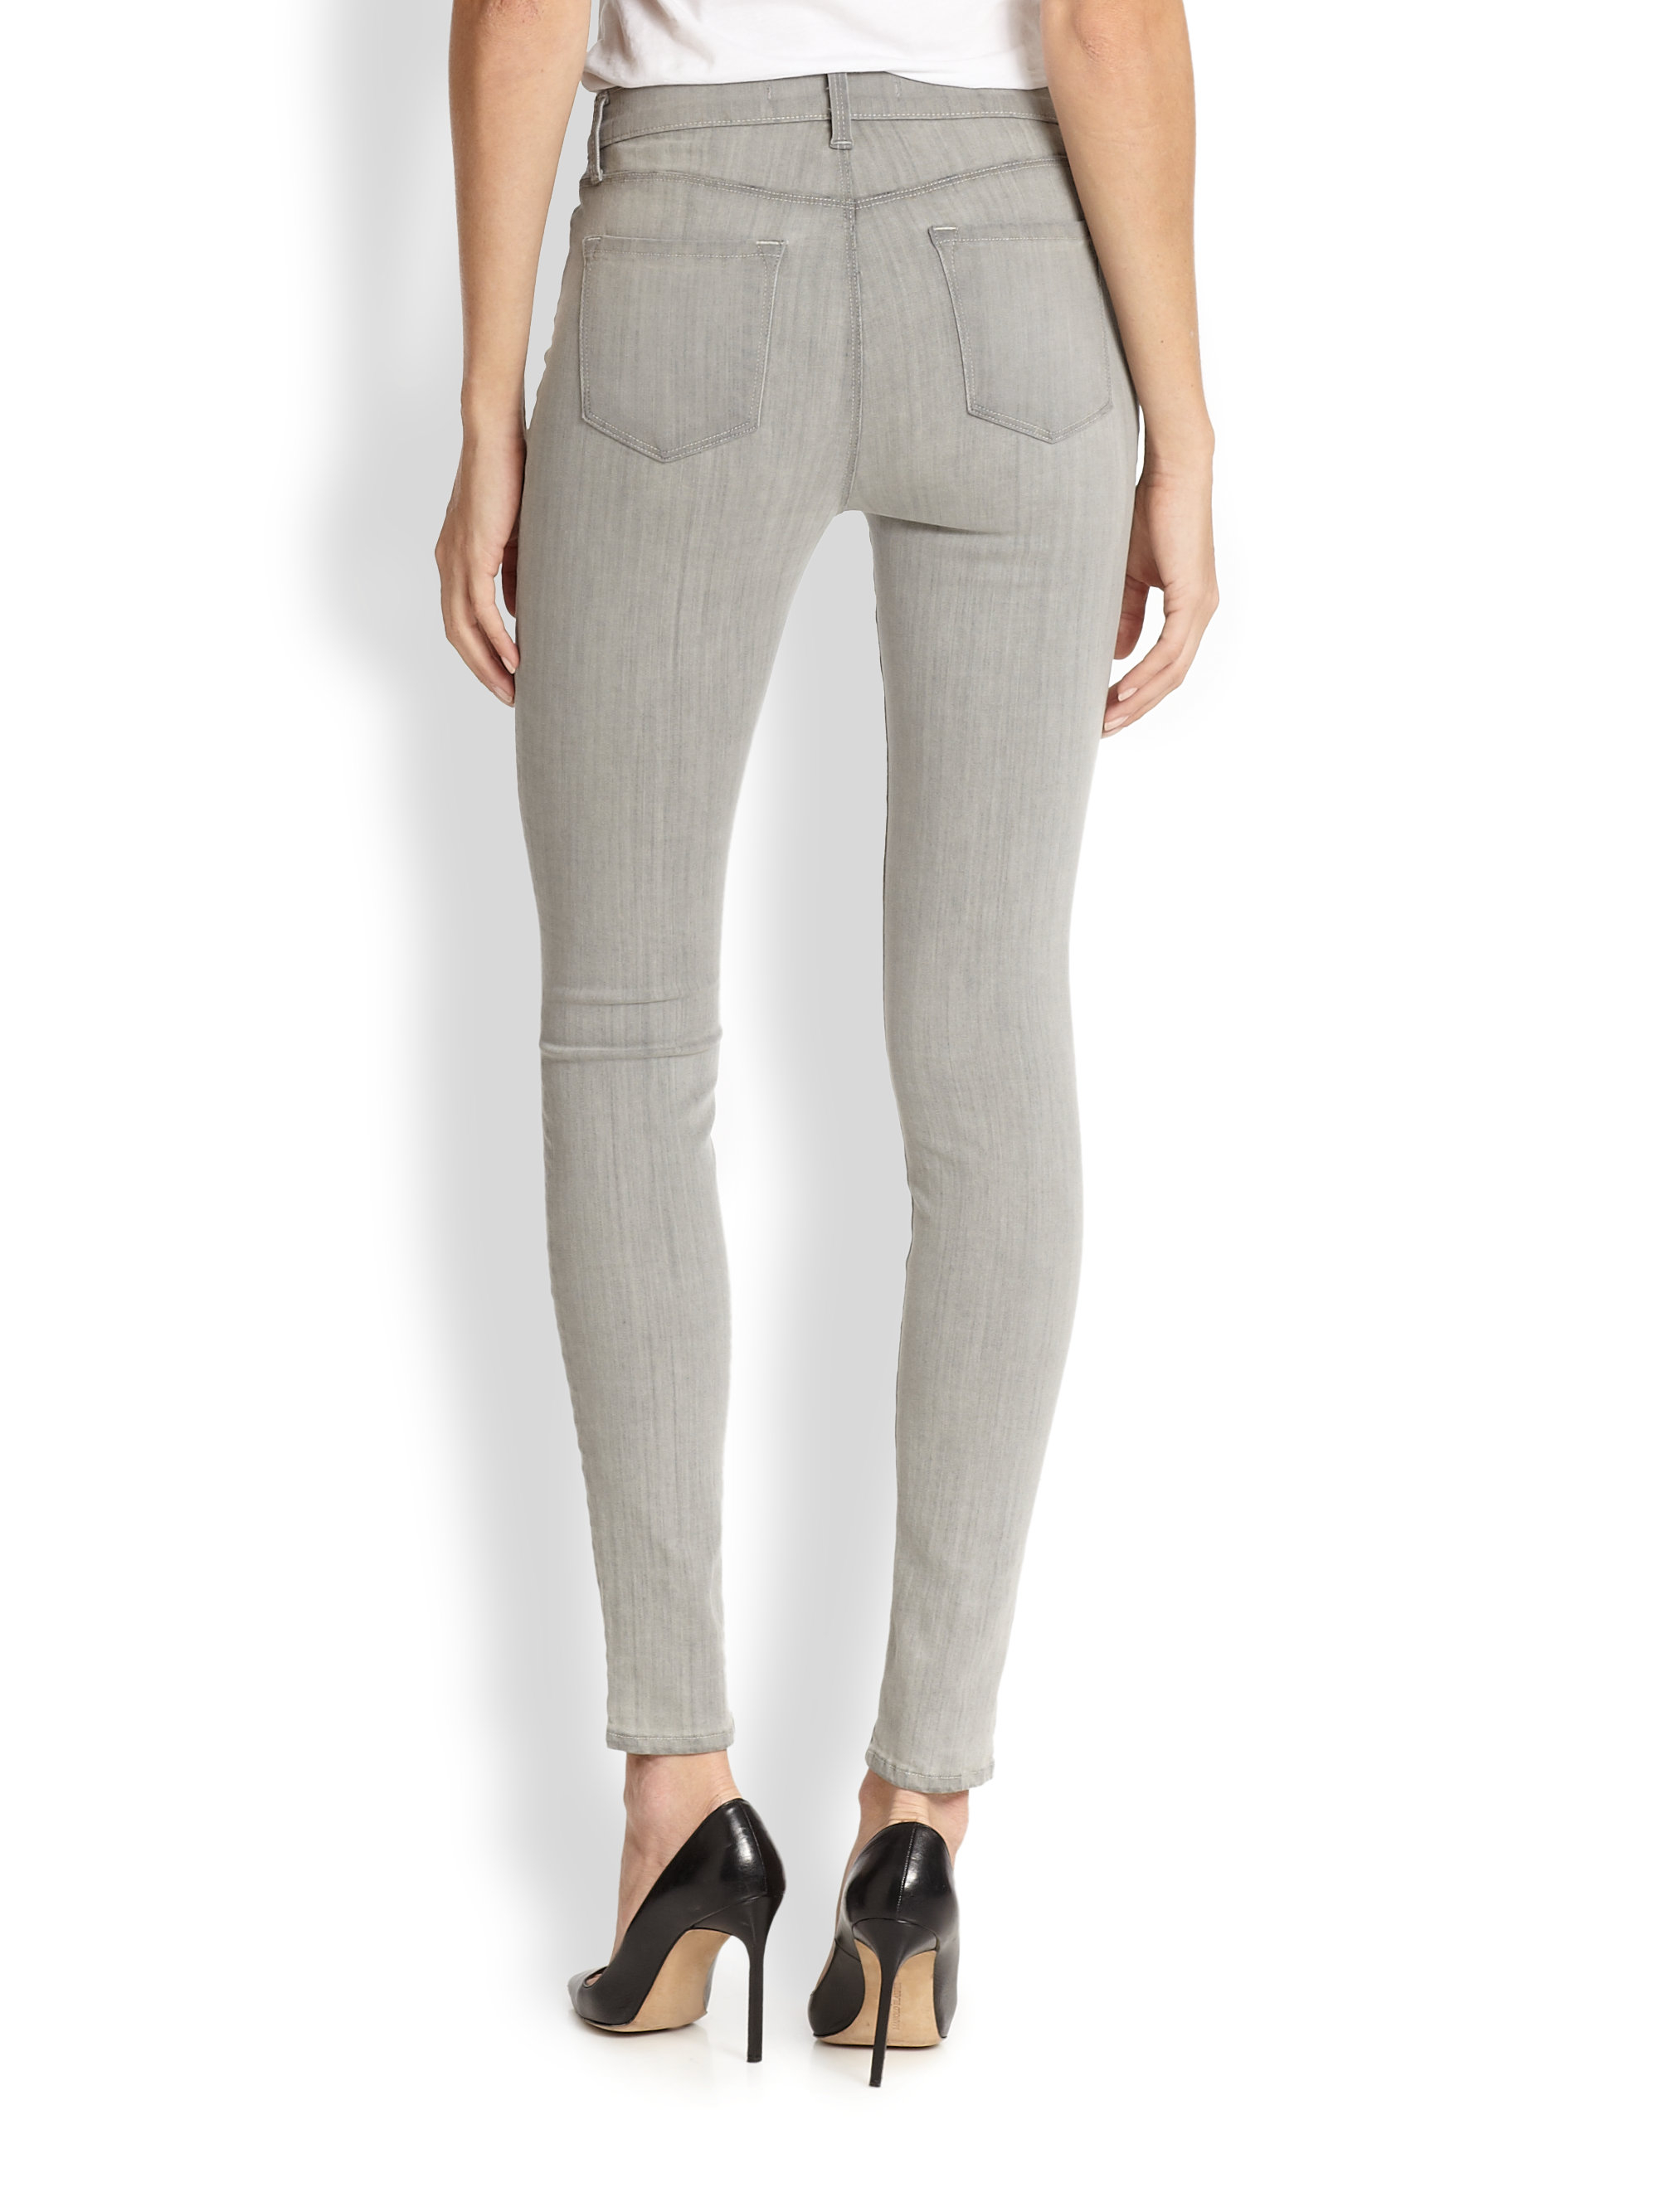 24d940e608e0 Lyst - J Brand Photoready Maria Highrise Skinny Jeans in Gray